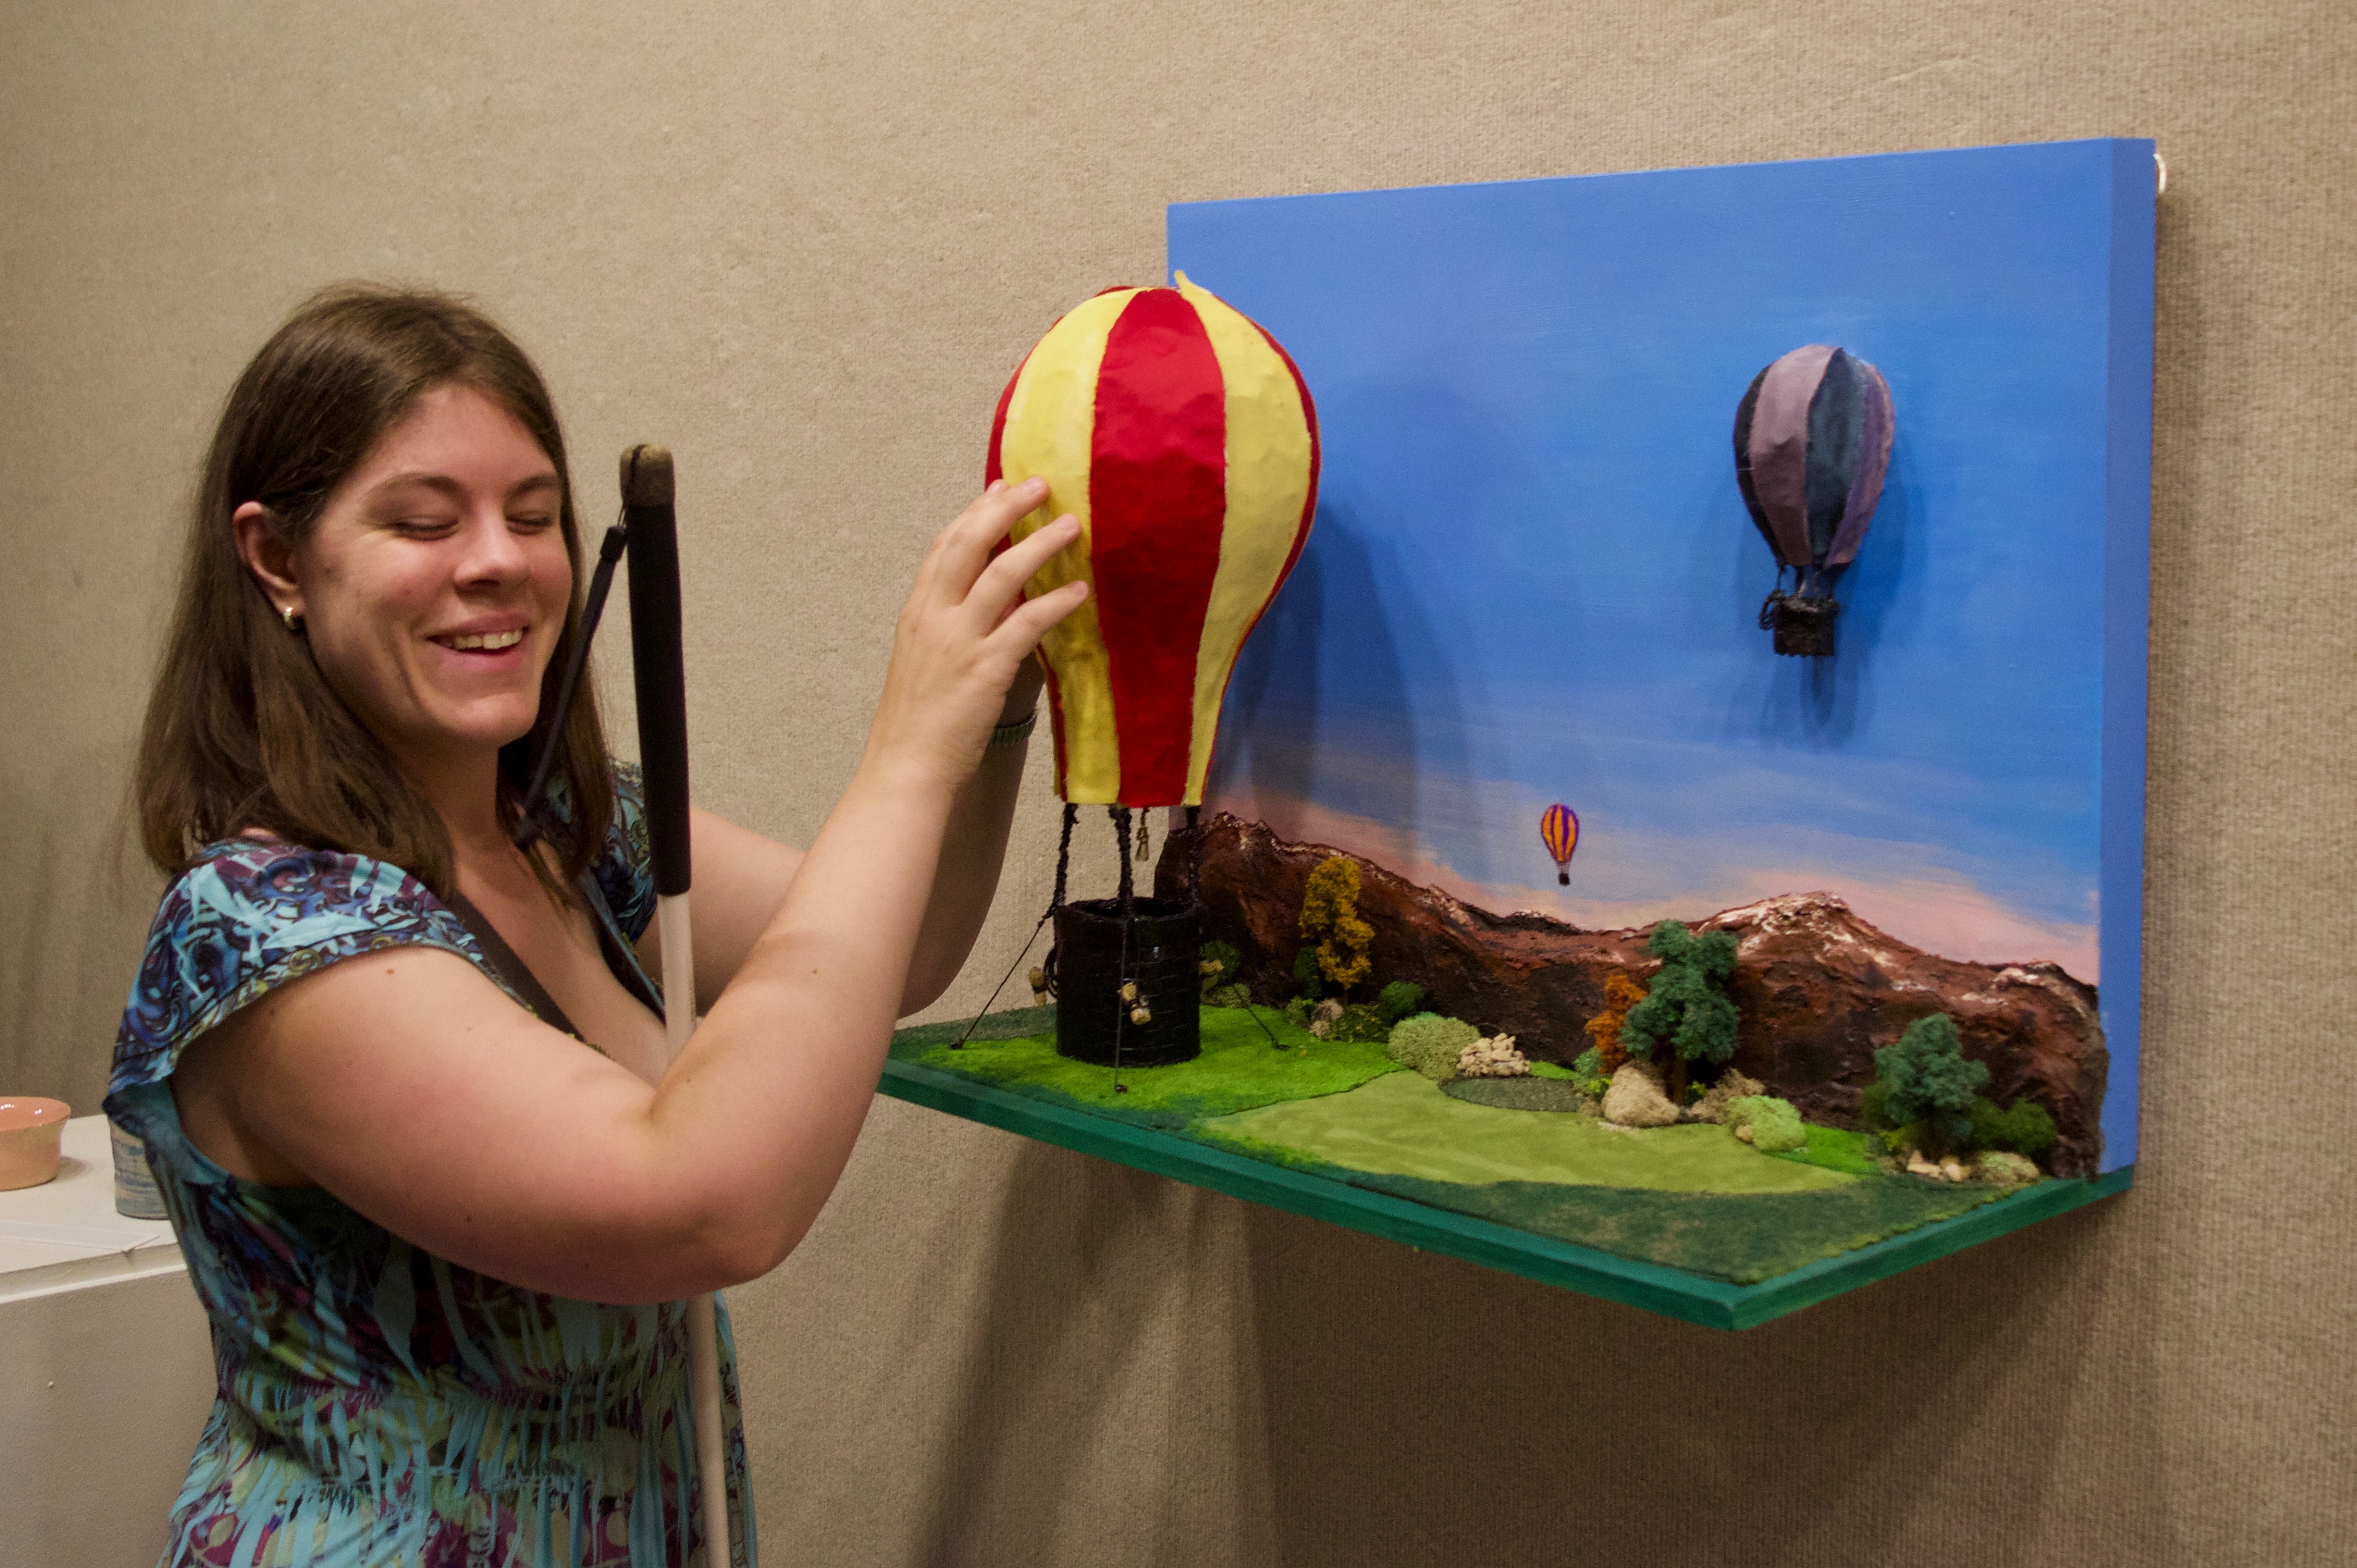 Chris P. explores the details of a hot air balloon